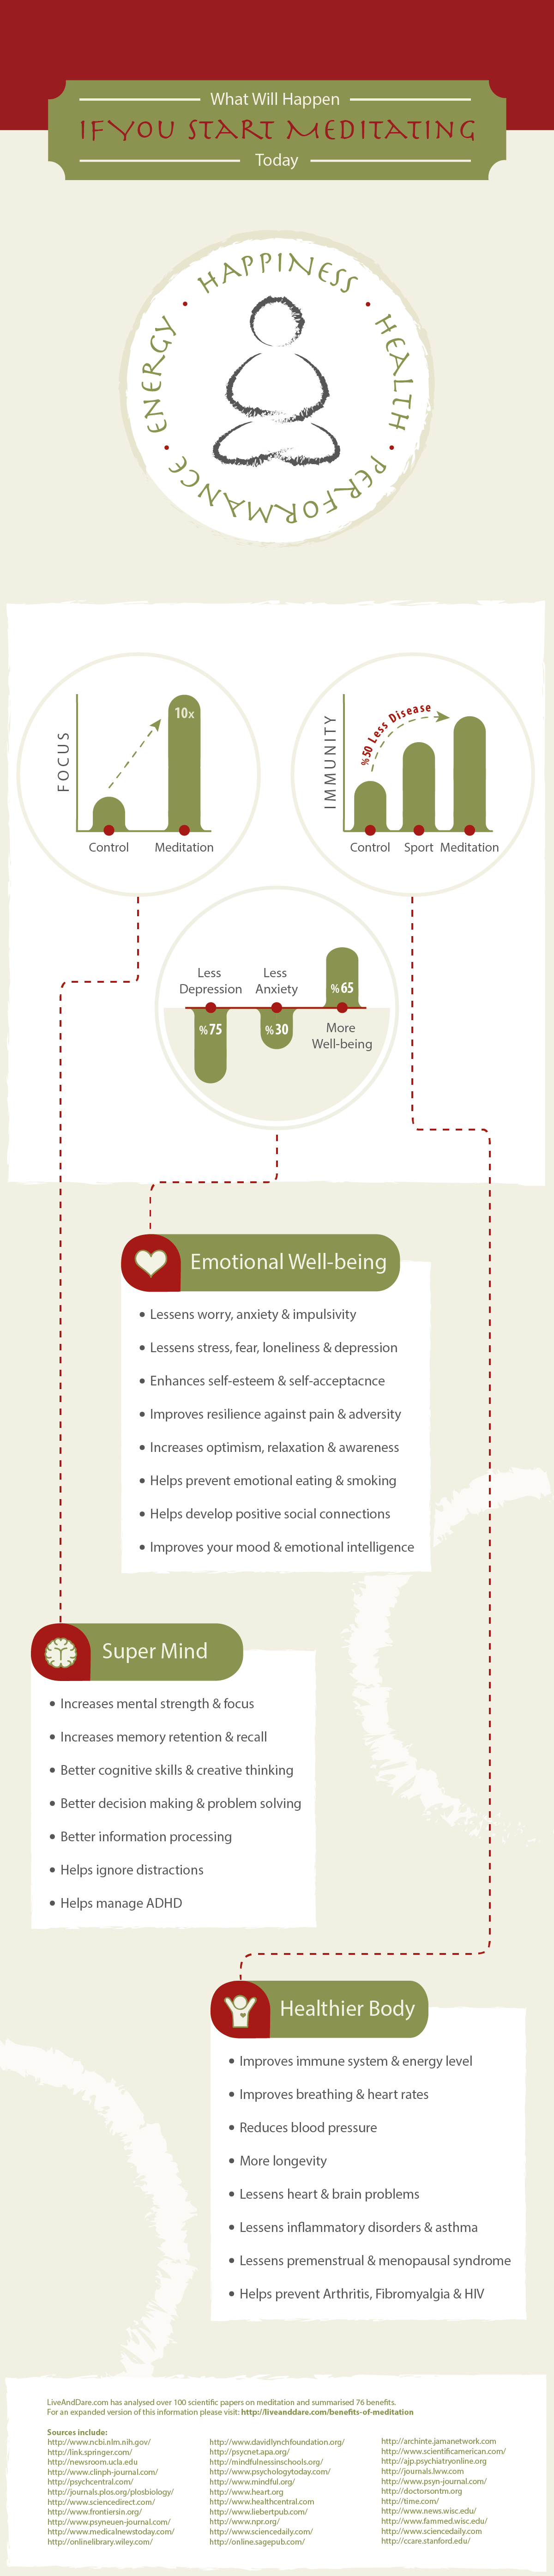 Why Meditation has Super-Powers: Proven Range of Benefits - Infographic